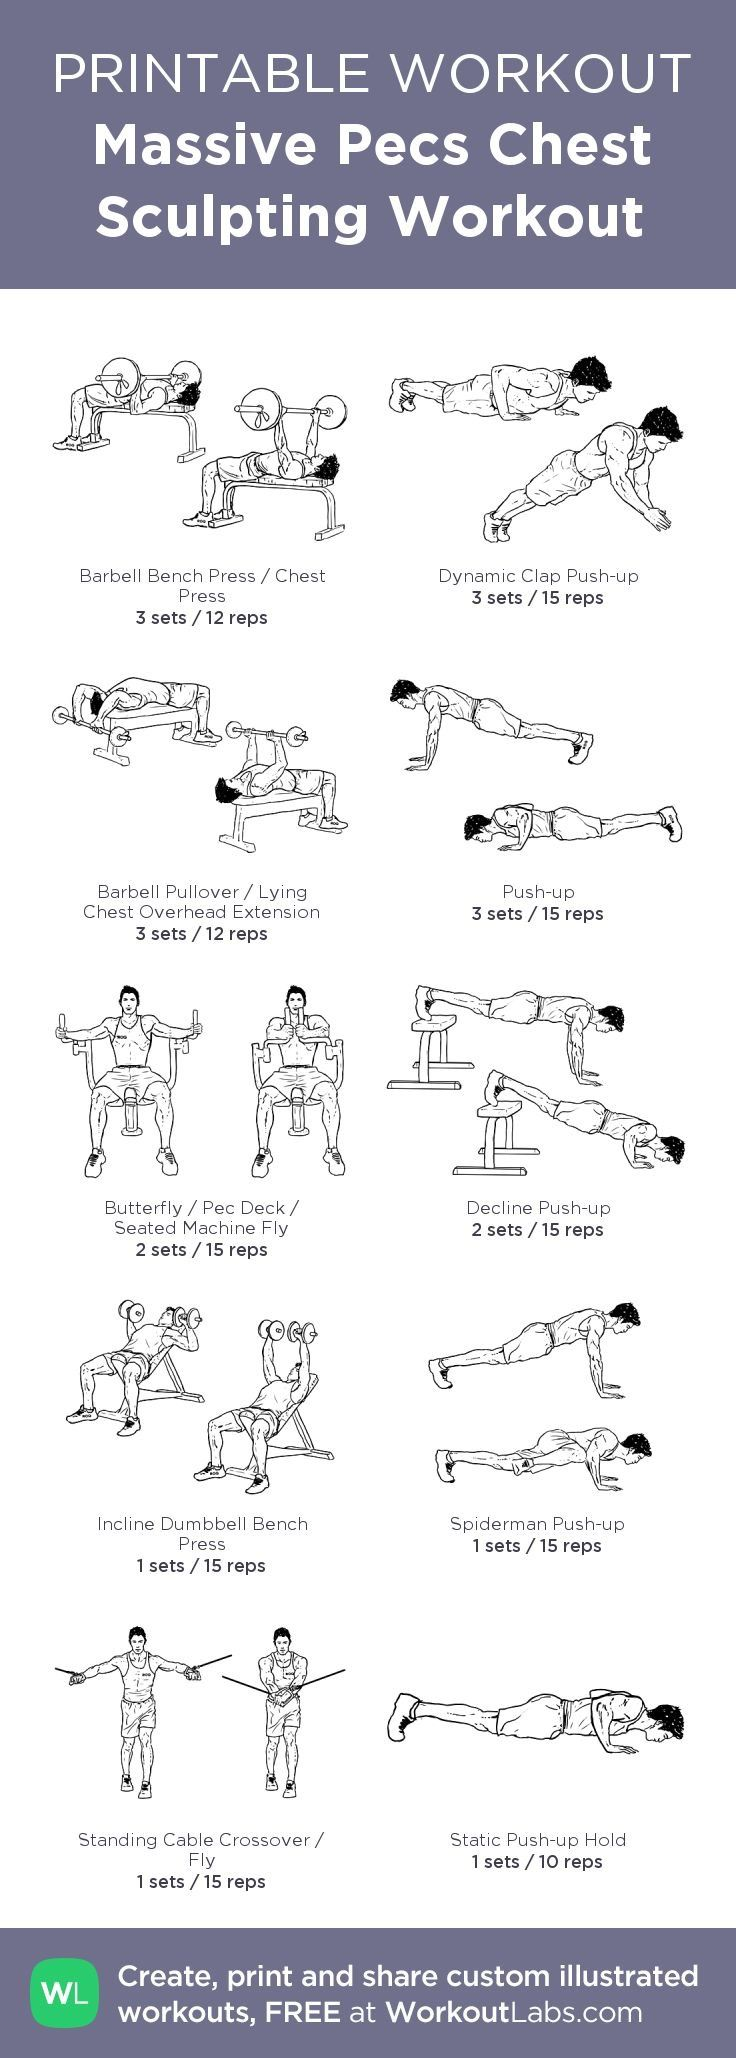 Barbell And Dumbbell Workout Routine Pdf Yourviewsite Co Rh Full Body Lifting Workouts For Men